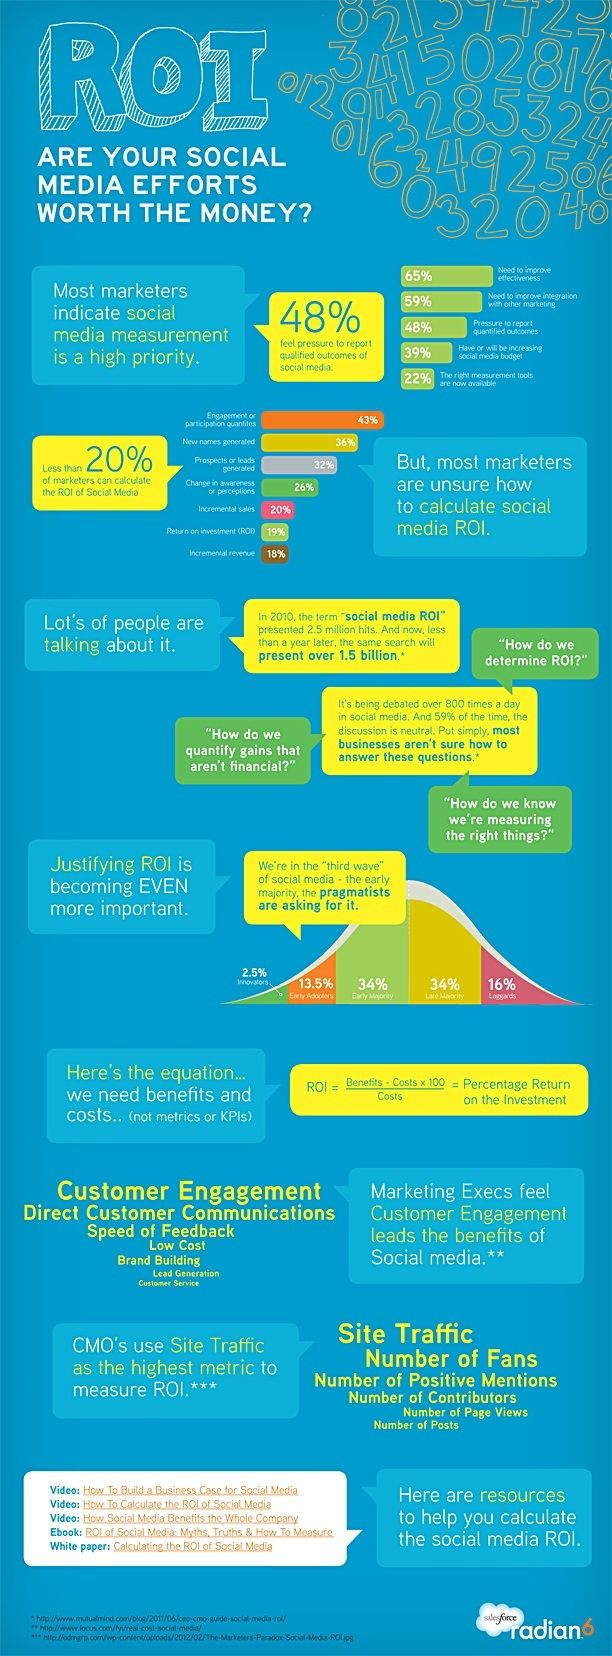 Advertising-Infographics-Learn-How-to-Measure-the-ROI-of-Social-Media-Infographic-FlowConnection Advertising Infographics : Learn How to Measure the ROI of Social Media [Infographic] #FlowConnection